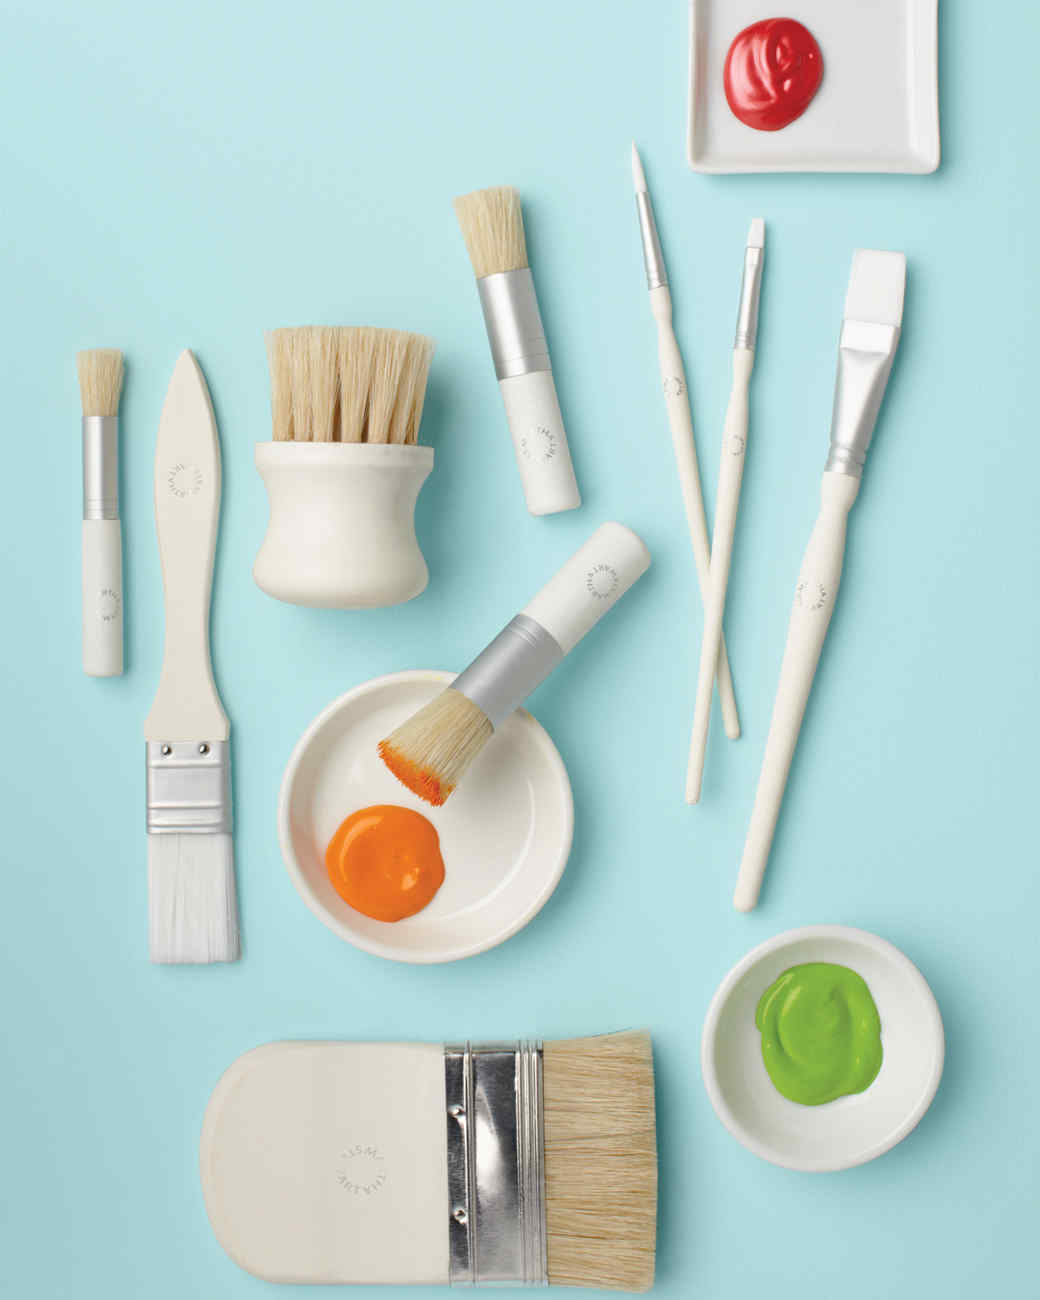 Martha Stewart Spray Paint Kit